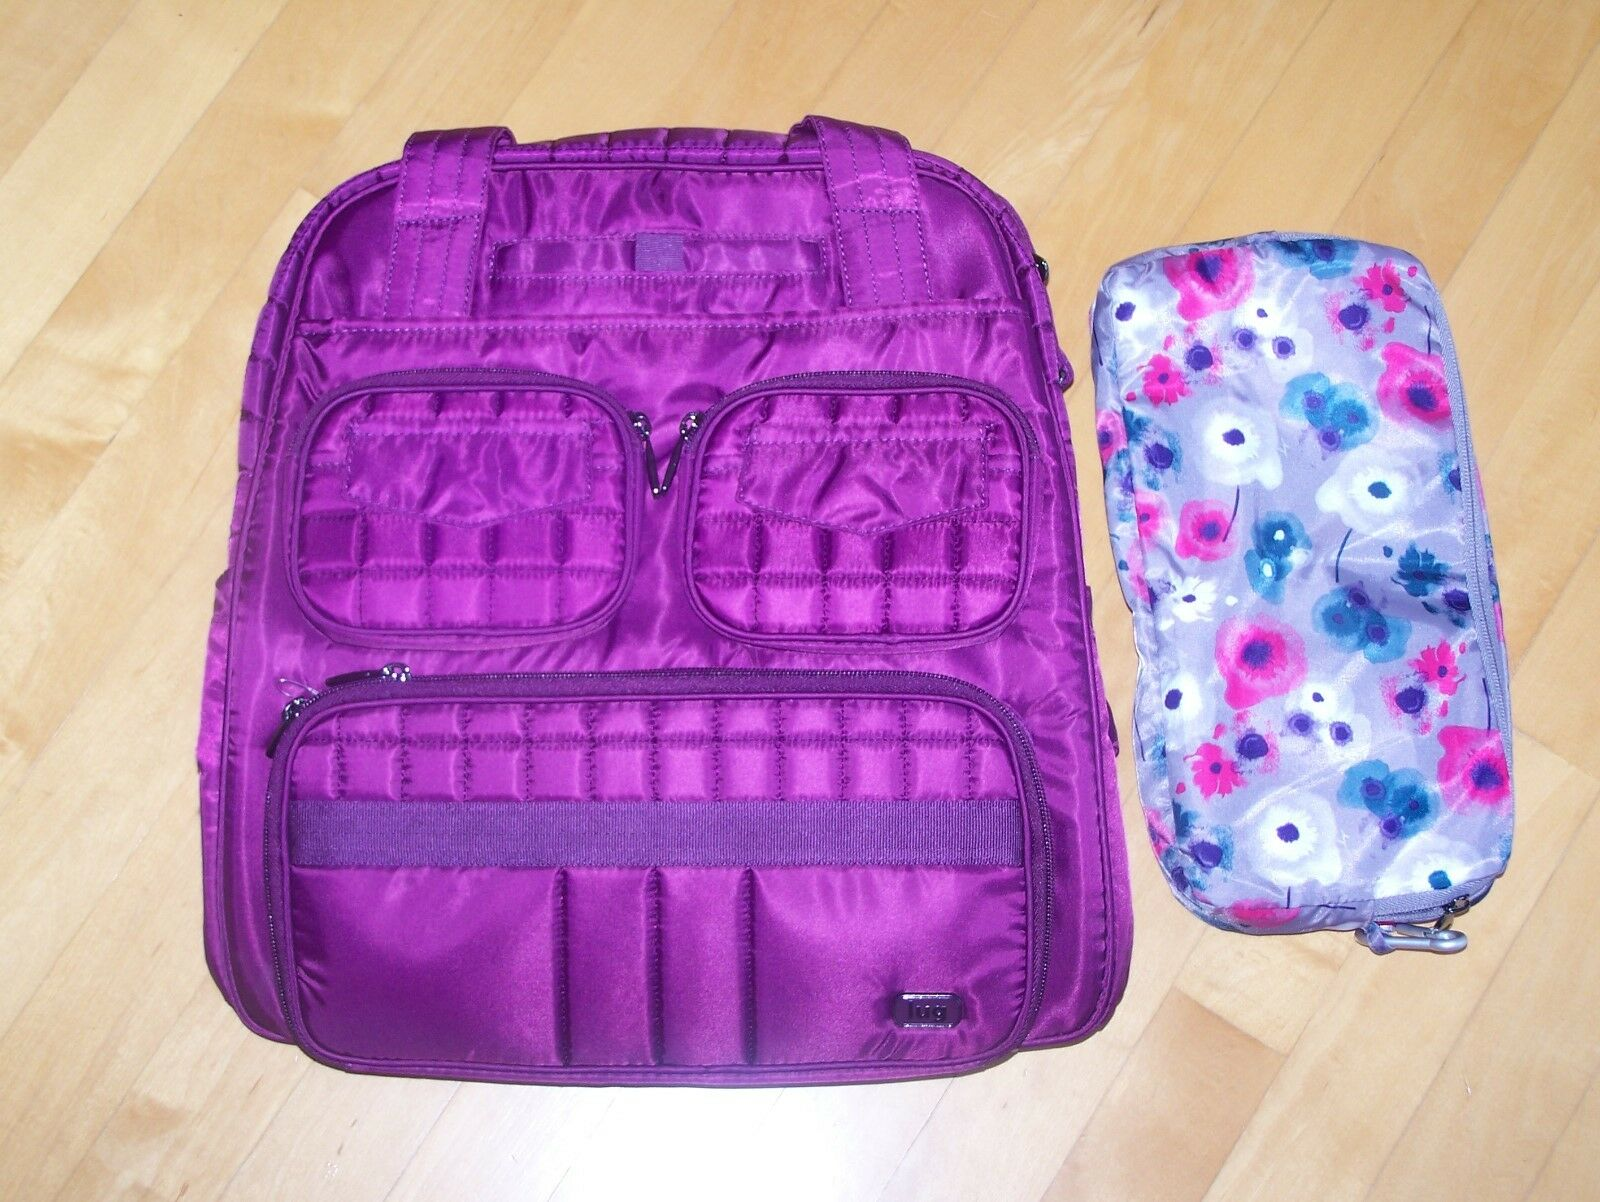 LUG Berry/Floral Puddle Jumper Travel Bag with Packable Carry-All NEW NWT